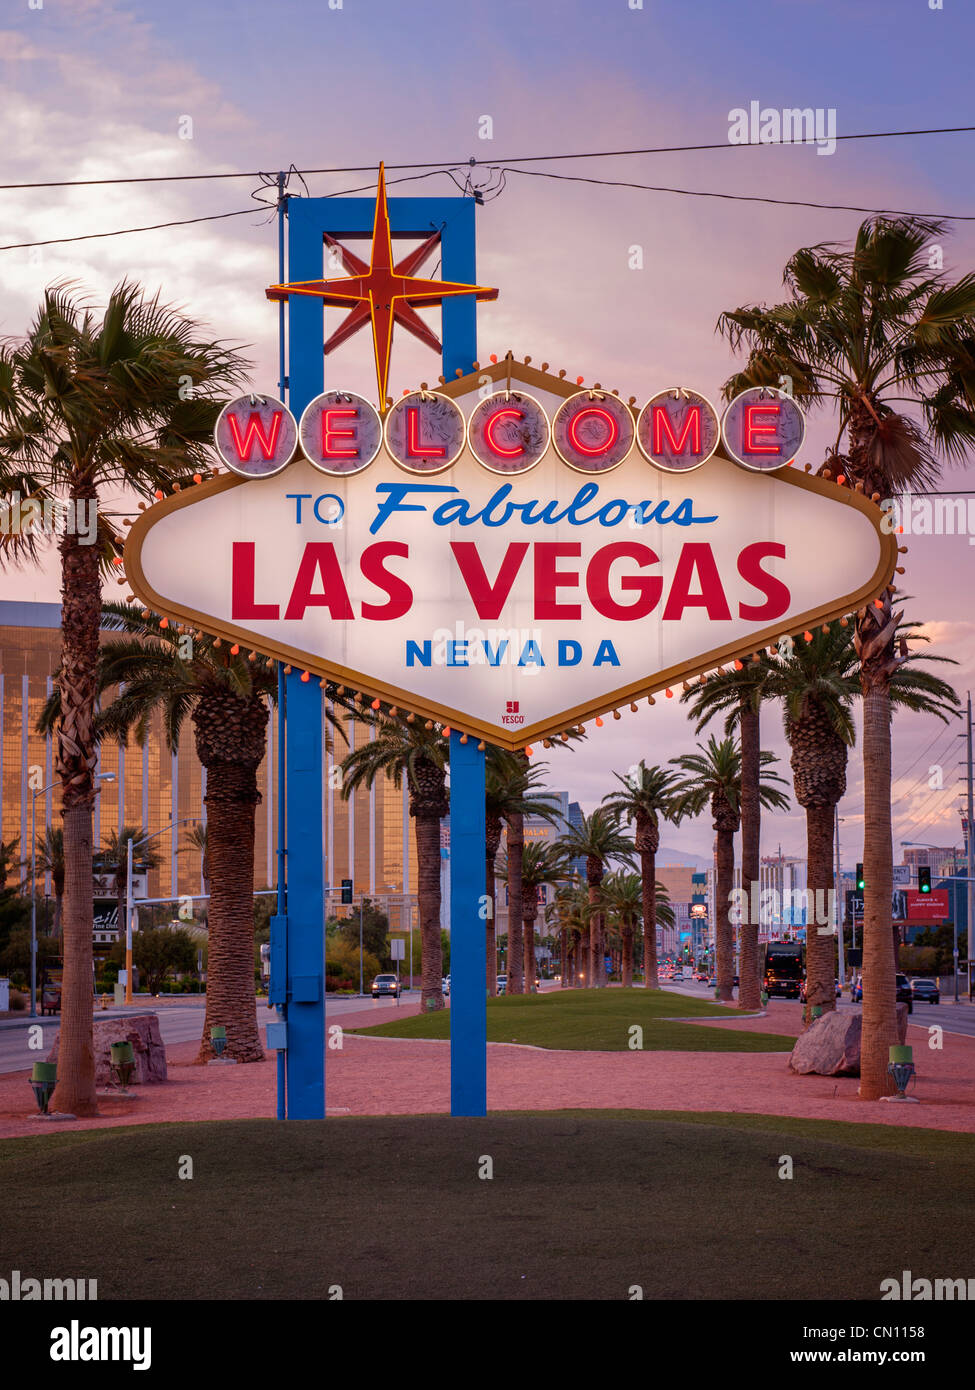 las vegas sign night stock photos las vegas sign night stock images alamy. Black Bedroom Furniture Sets. Home Design Ideas